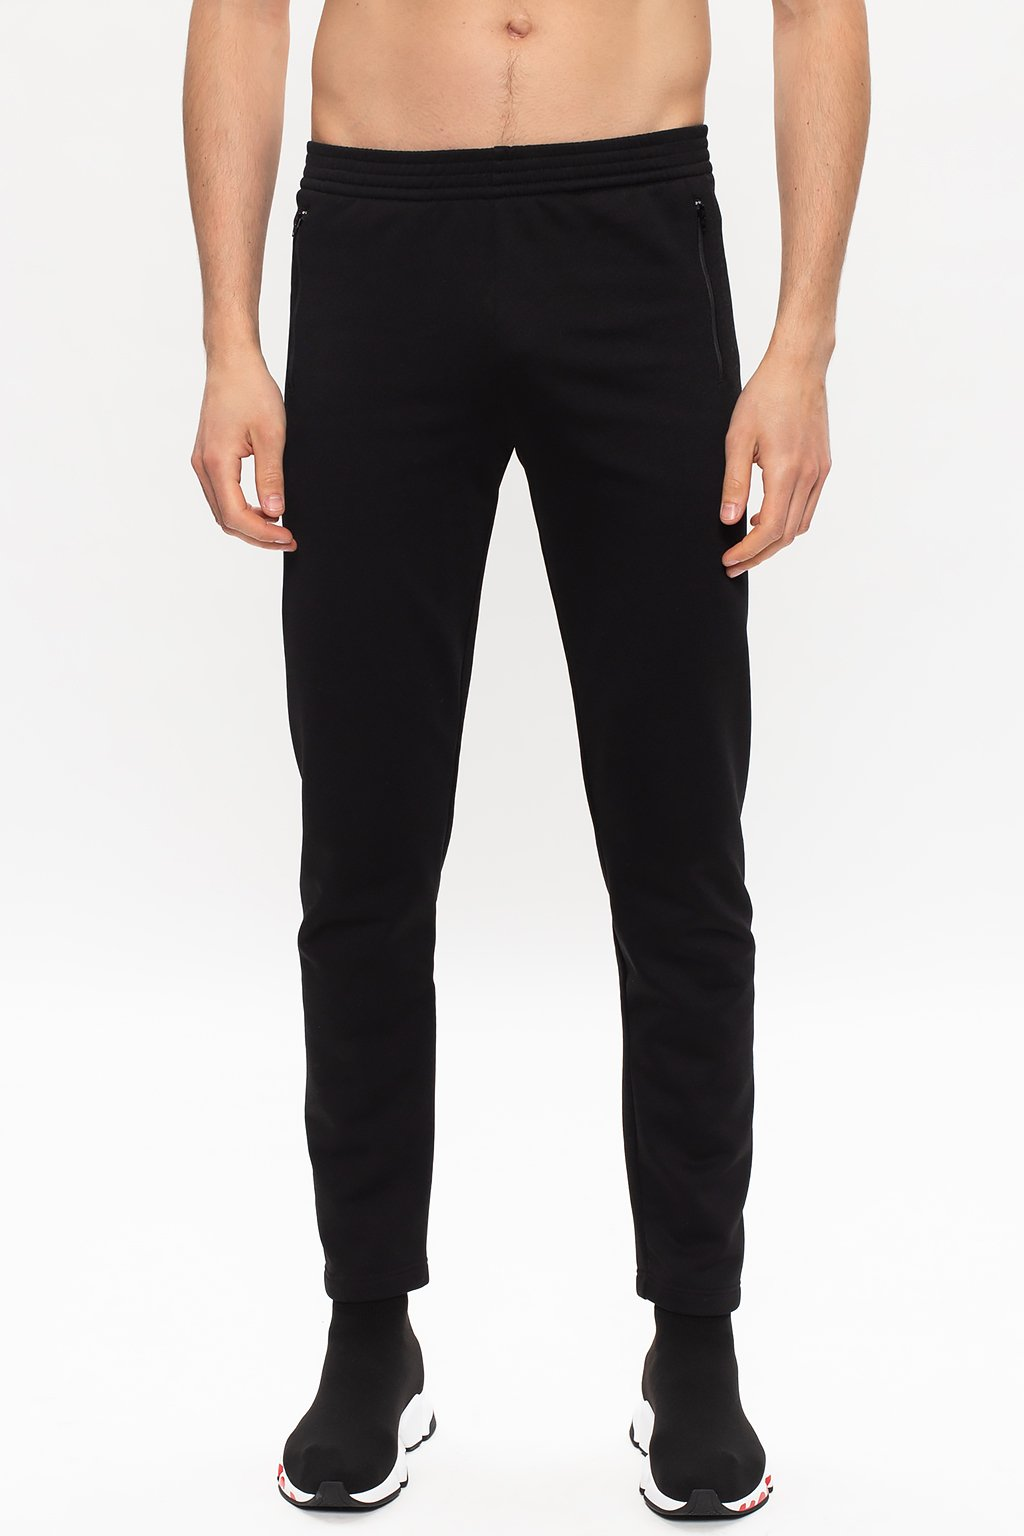 Balenciaga Tapered leg sweatpants